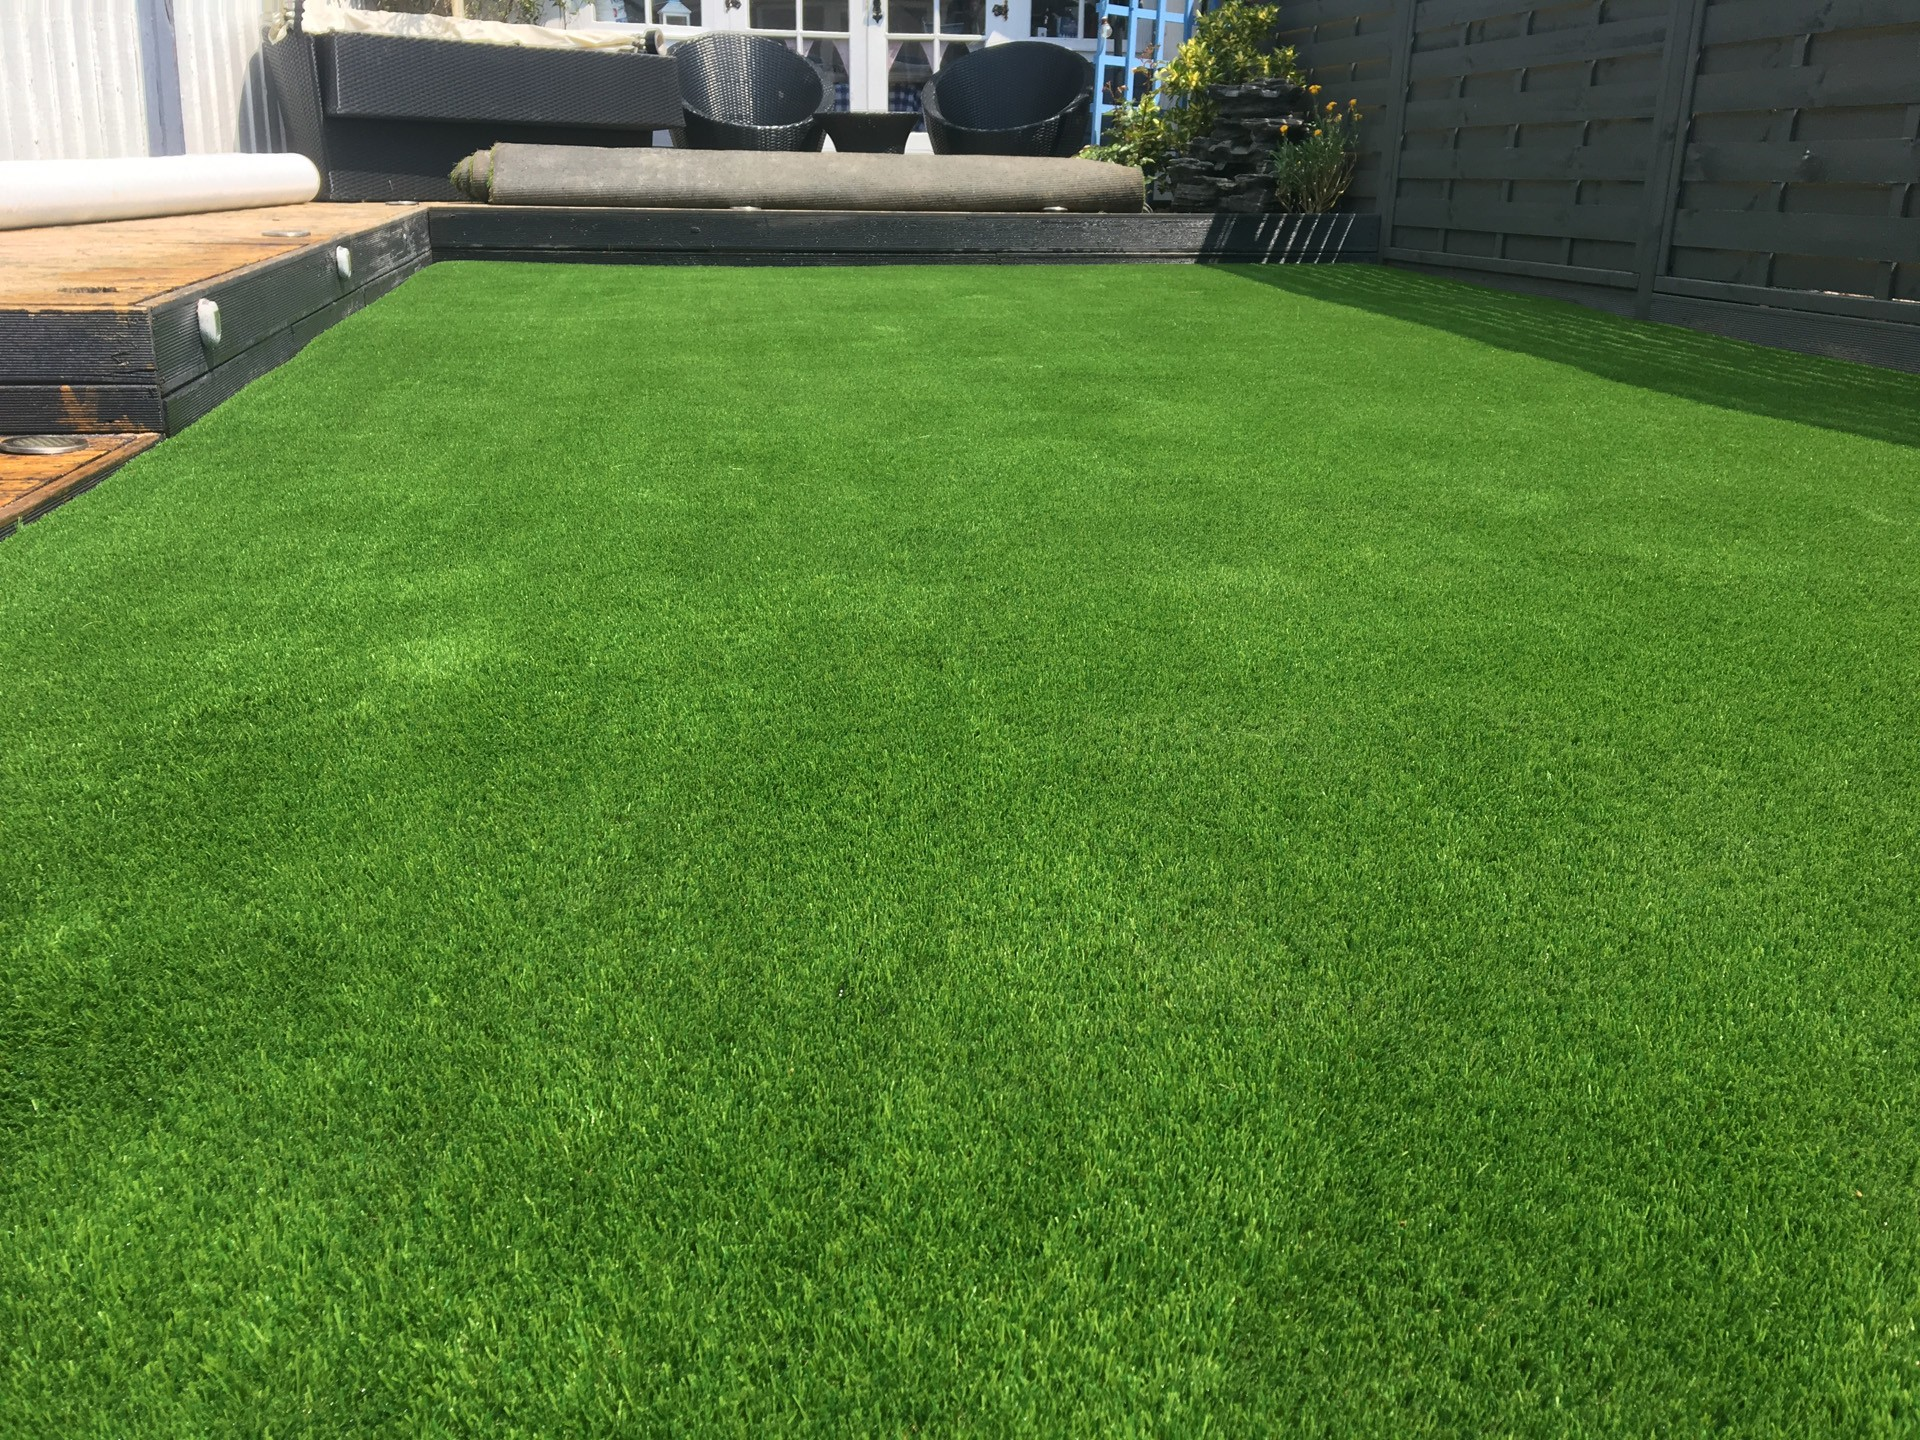 AGI perfectly green artificial grass